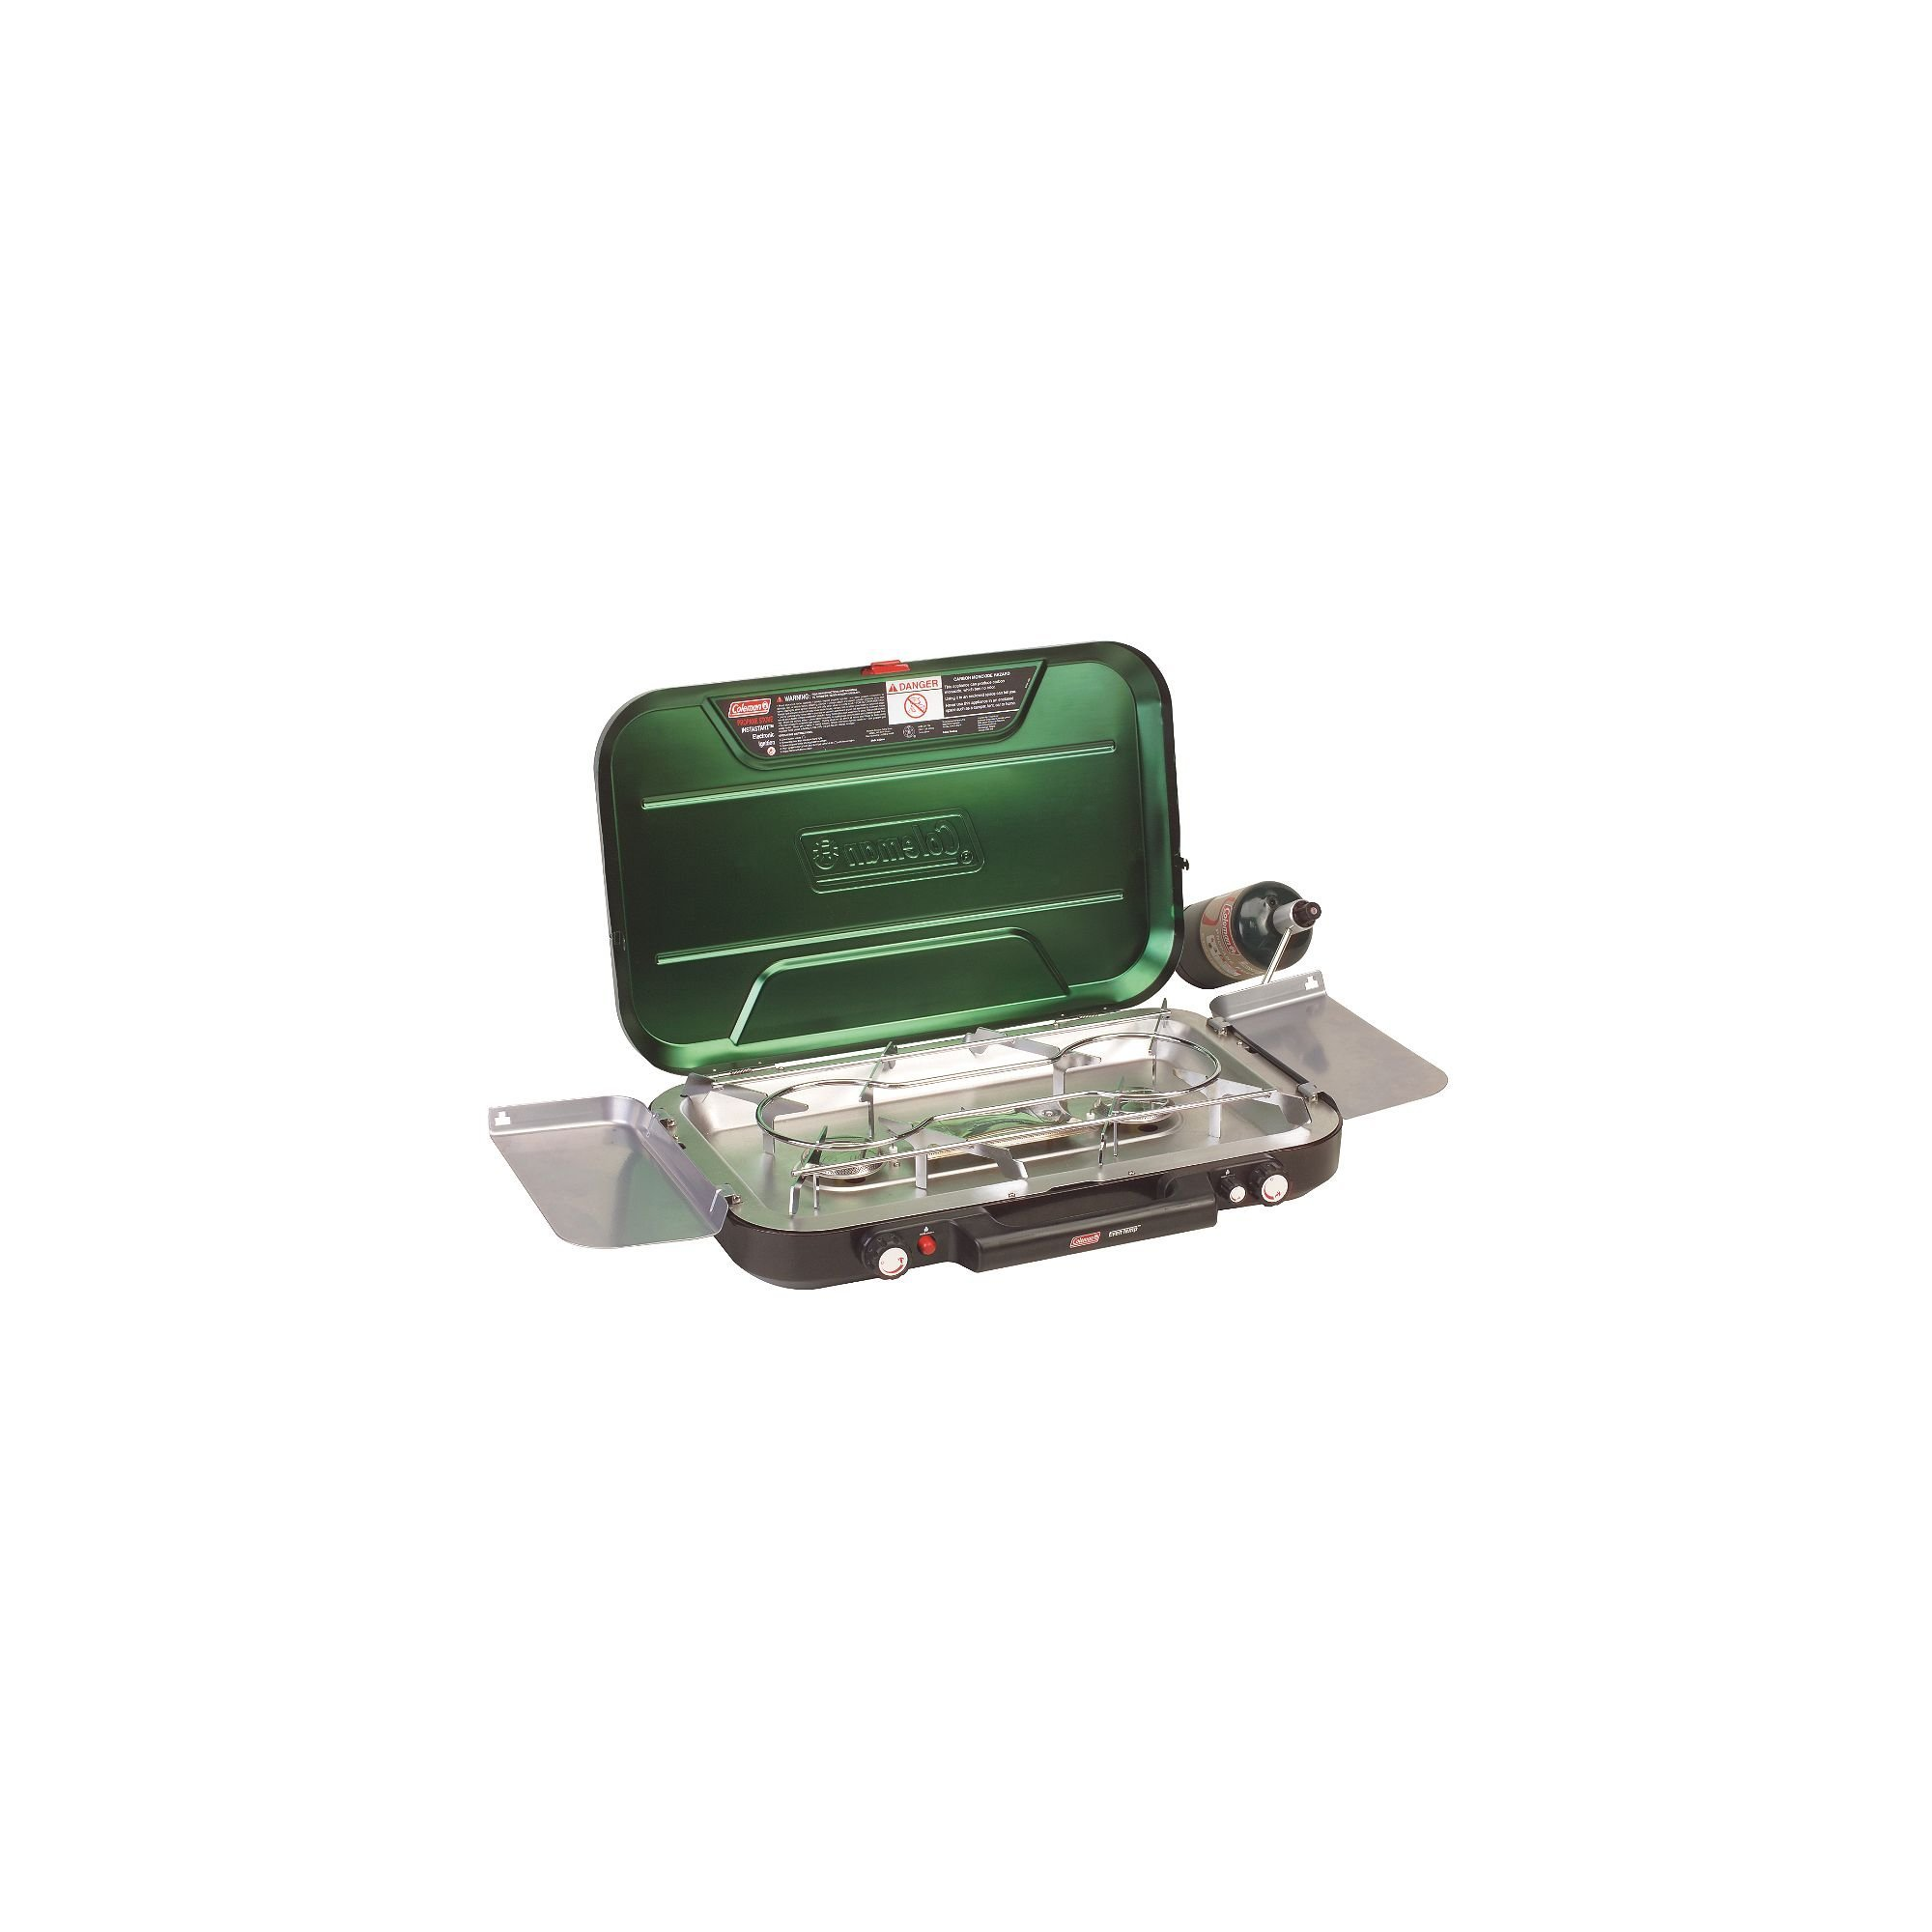 Coleman Eventemp 3 Burner Propane Stove by Coleman